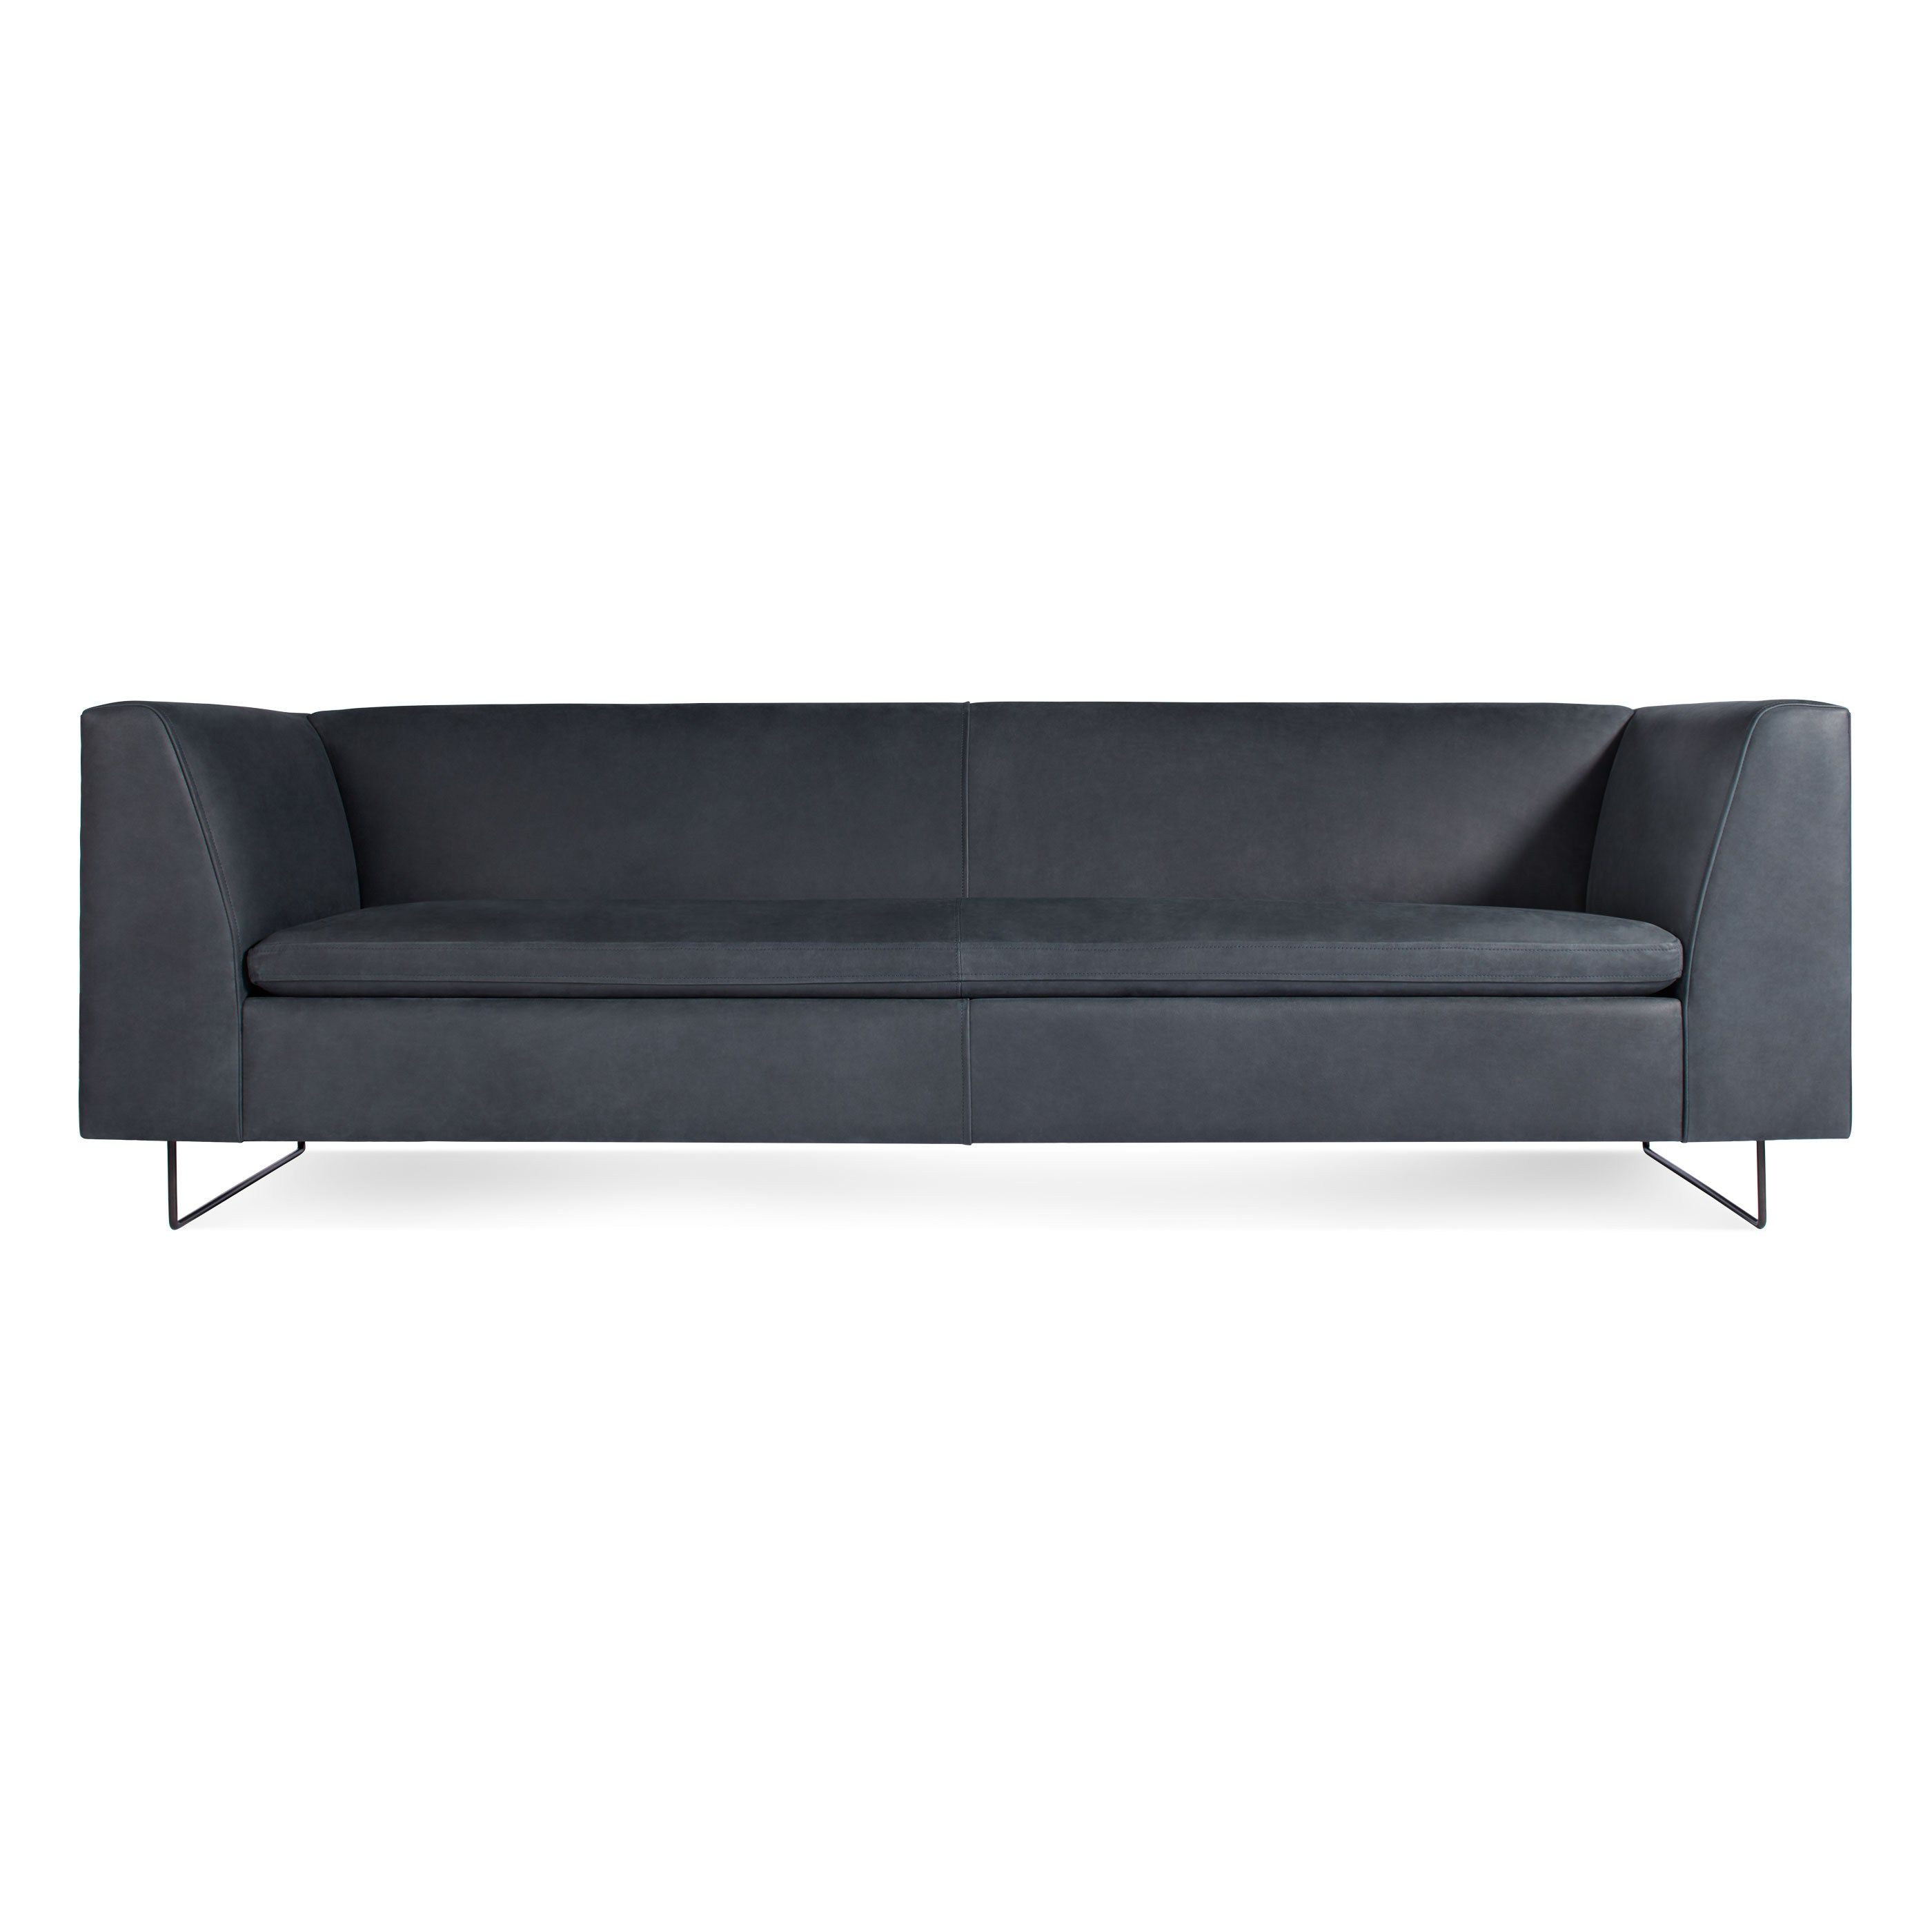 "Bonnie 96"" Leather Studio Sofa"